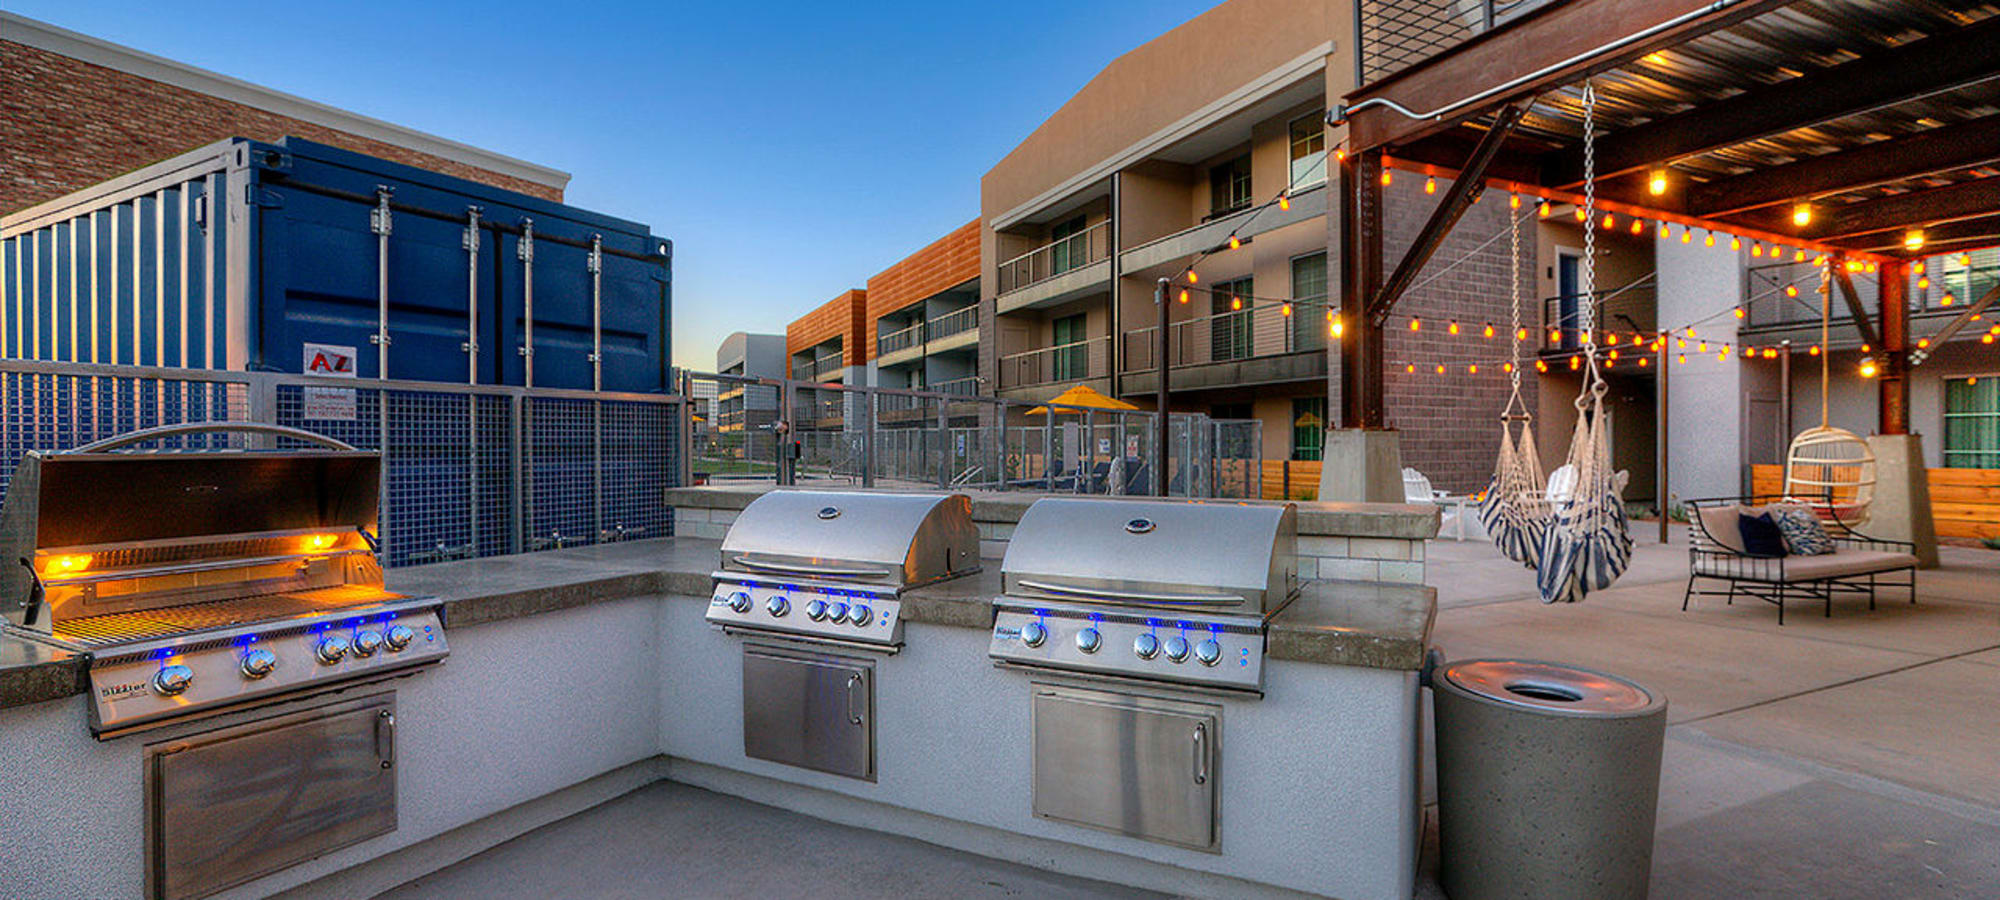 Barbecue area at District Lofts in Gilbert, Arizona